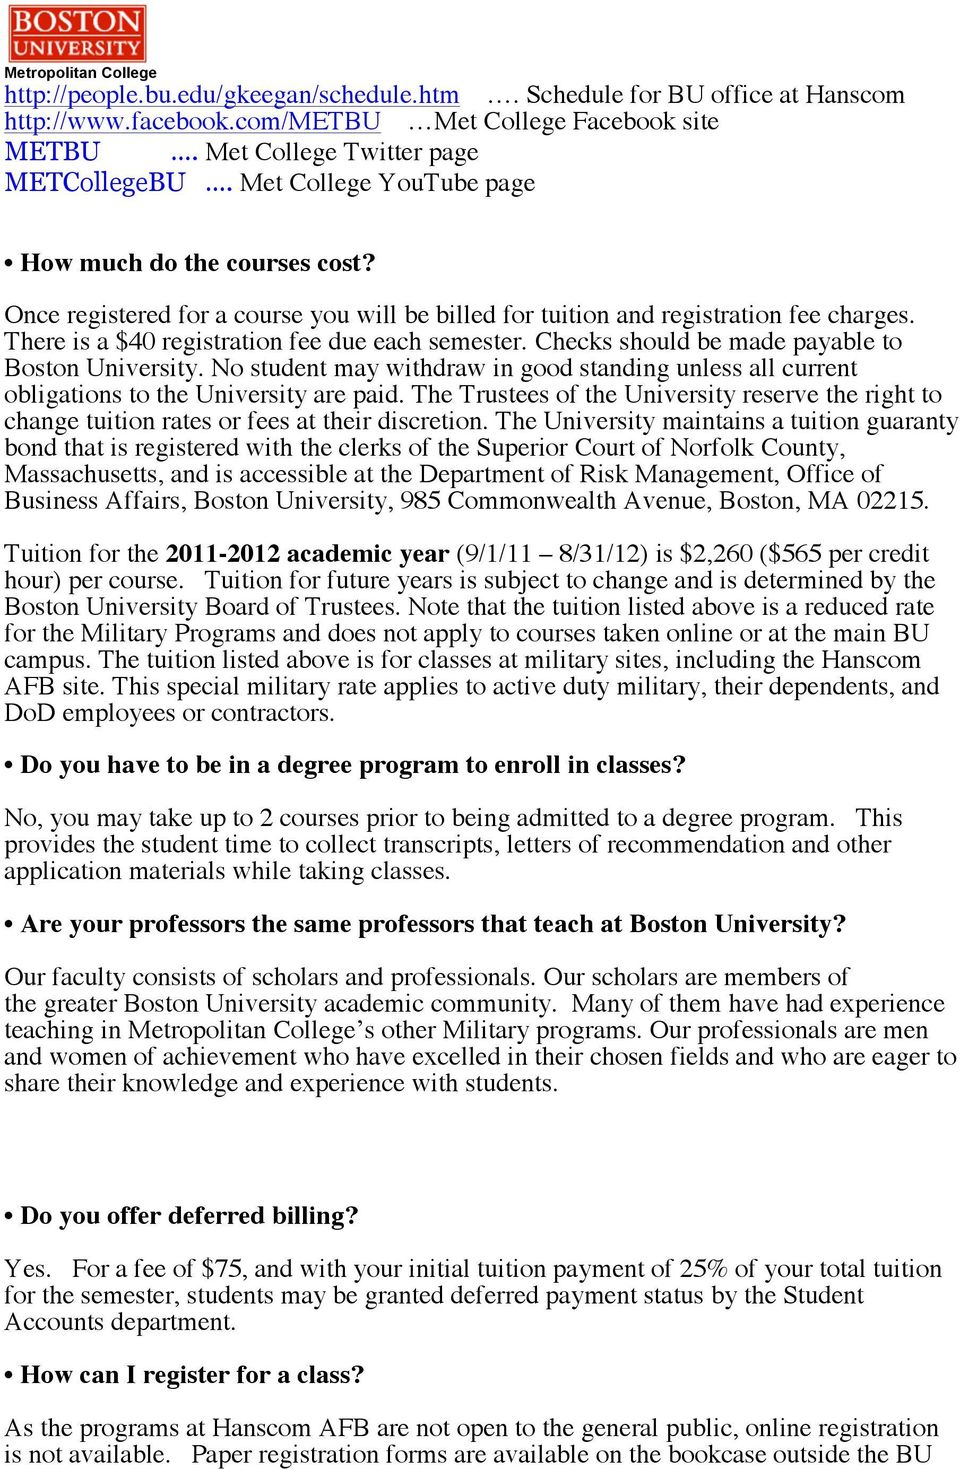 msu essay questions 2012 Which can be further characterized by smaller-scale steps and reflective questions in  our study took place in a spring 2012 seminar at the virginia b ball center.